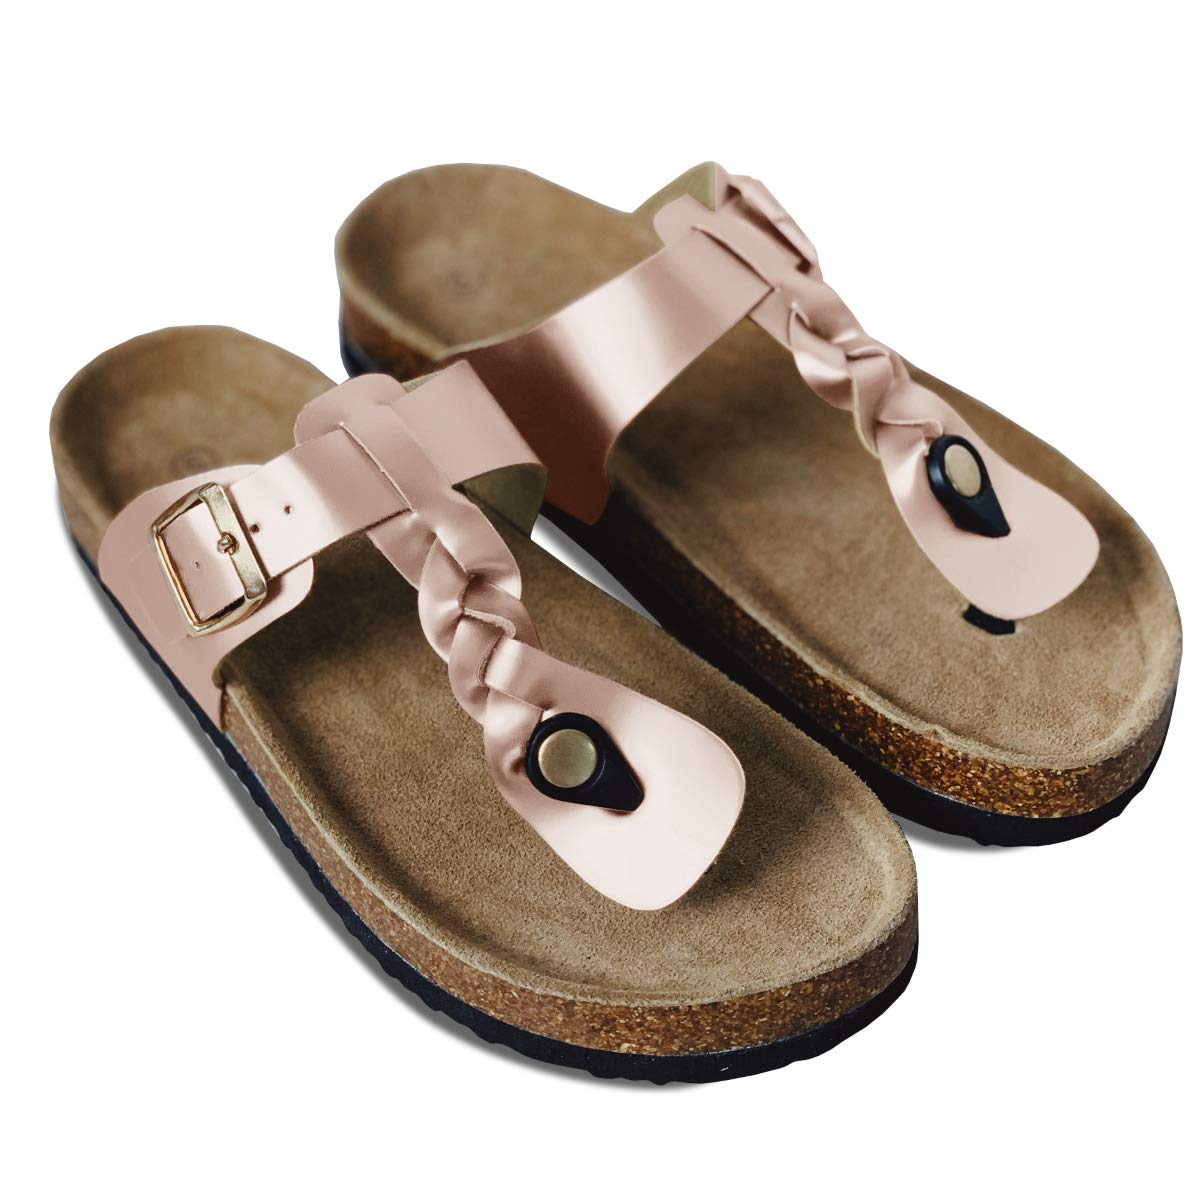 Womens Platform Thong Flip Flops Slip On T Strap Braided Cork Flat Sandals